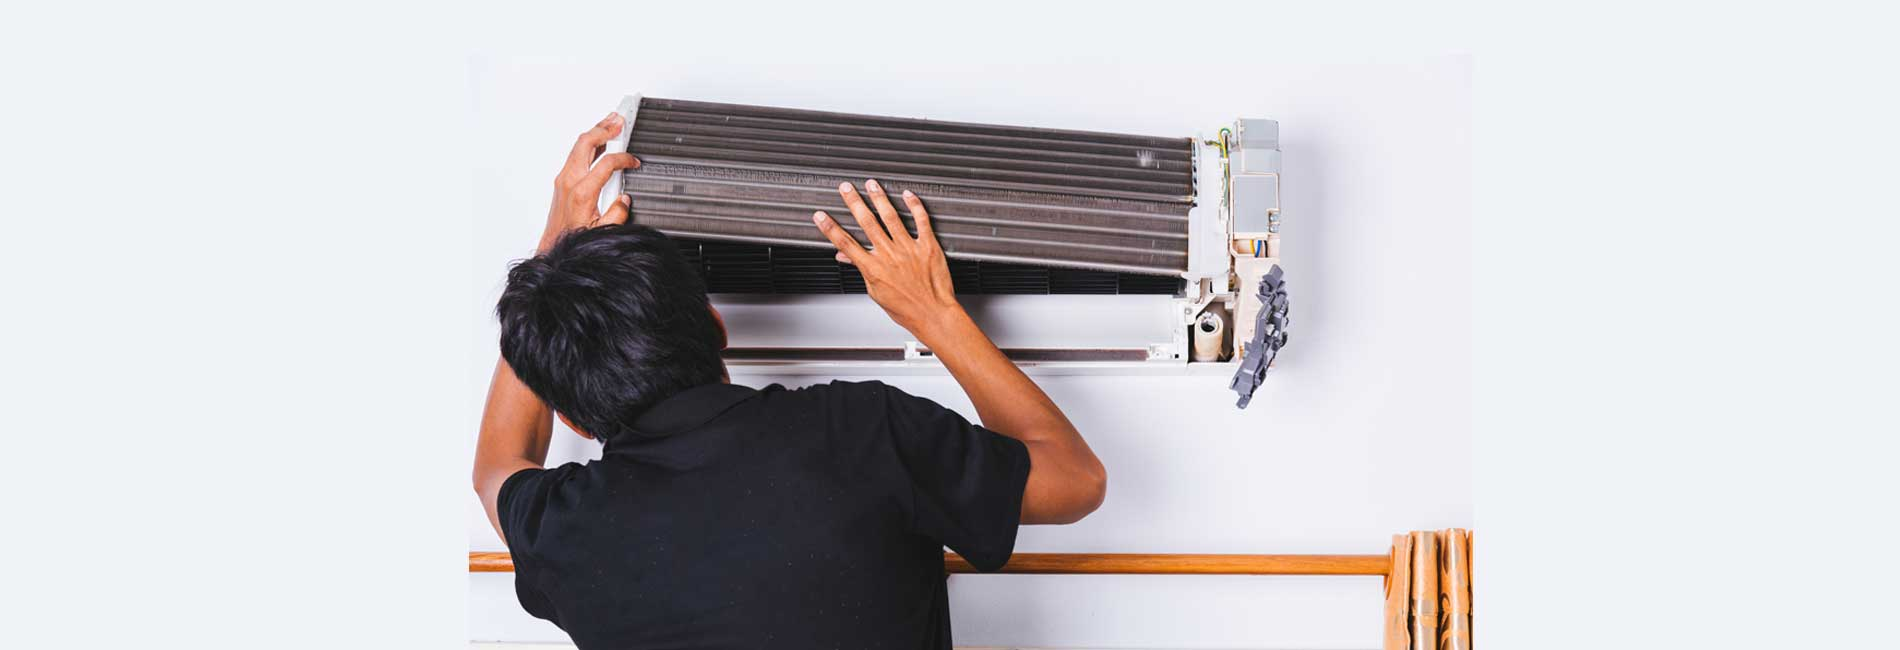 Panasonic AC Uninstallation Charges in Seven wells